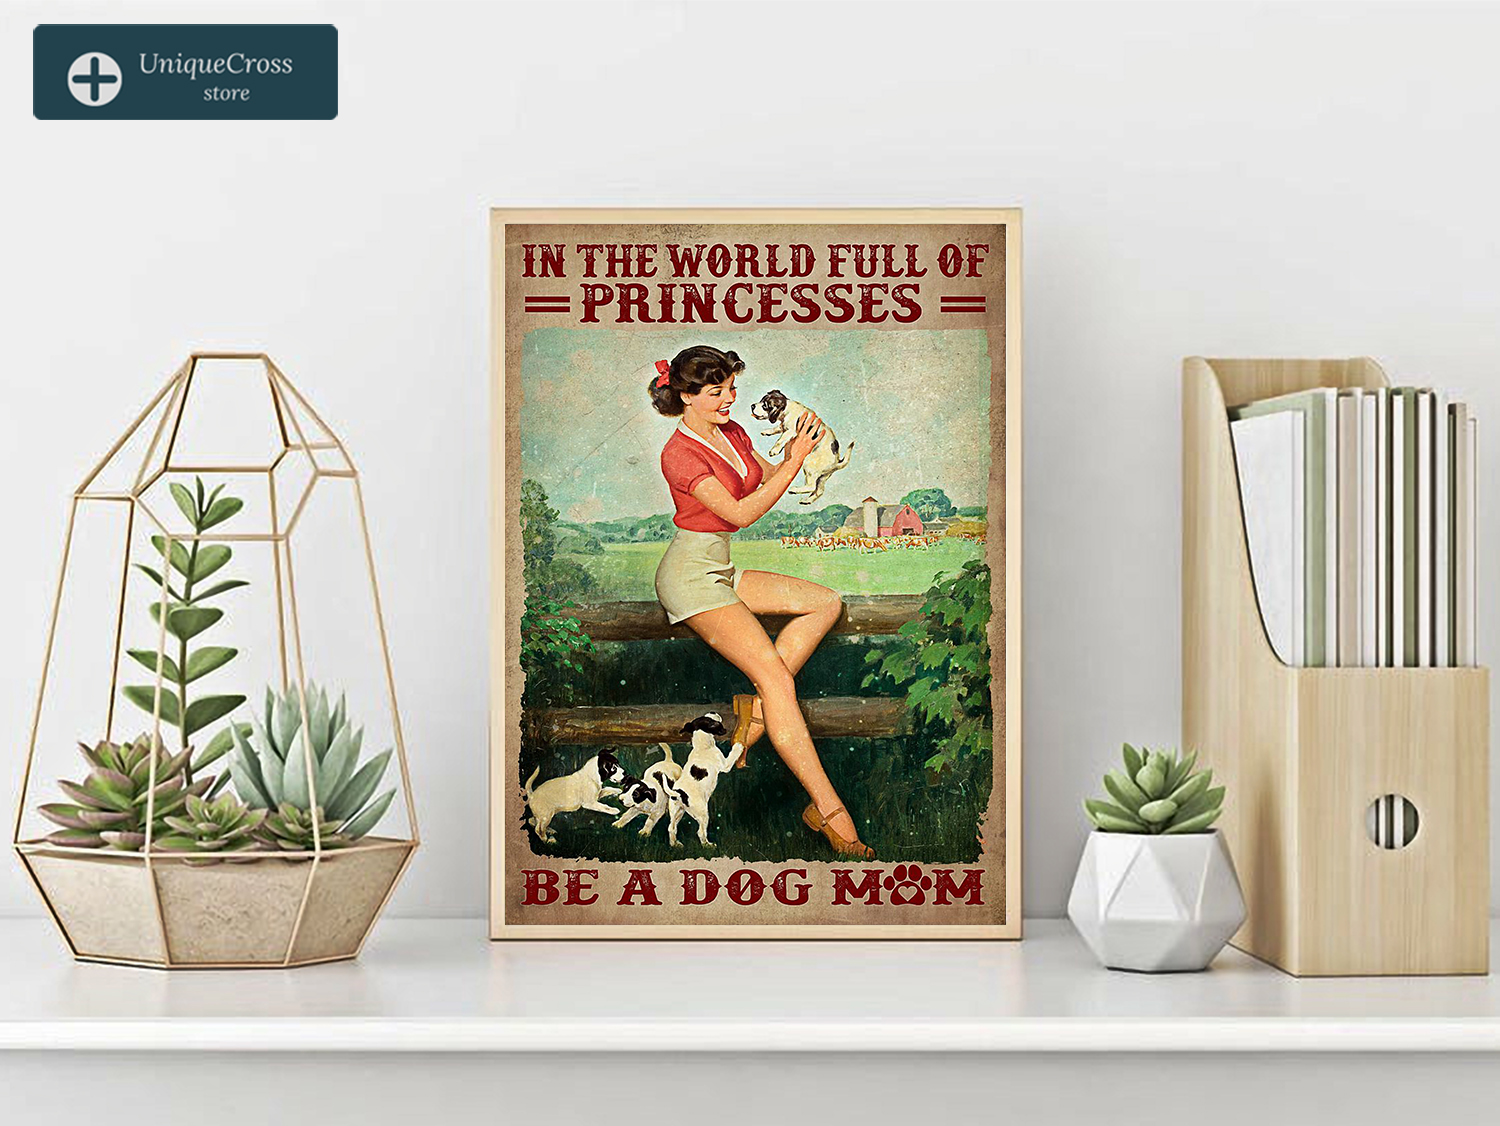 In the world full of princesses be a dog mom poster